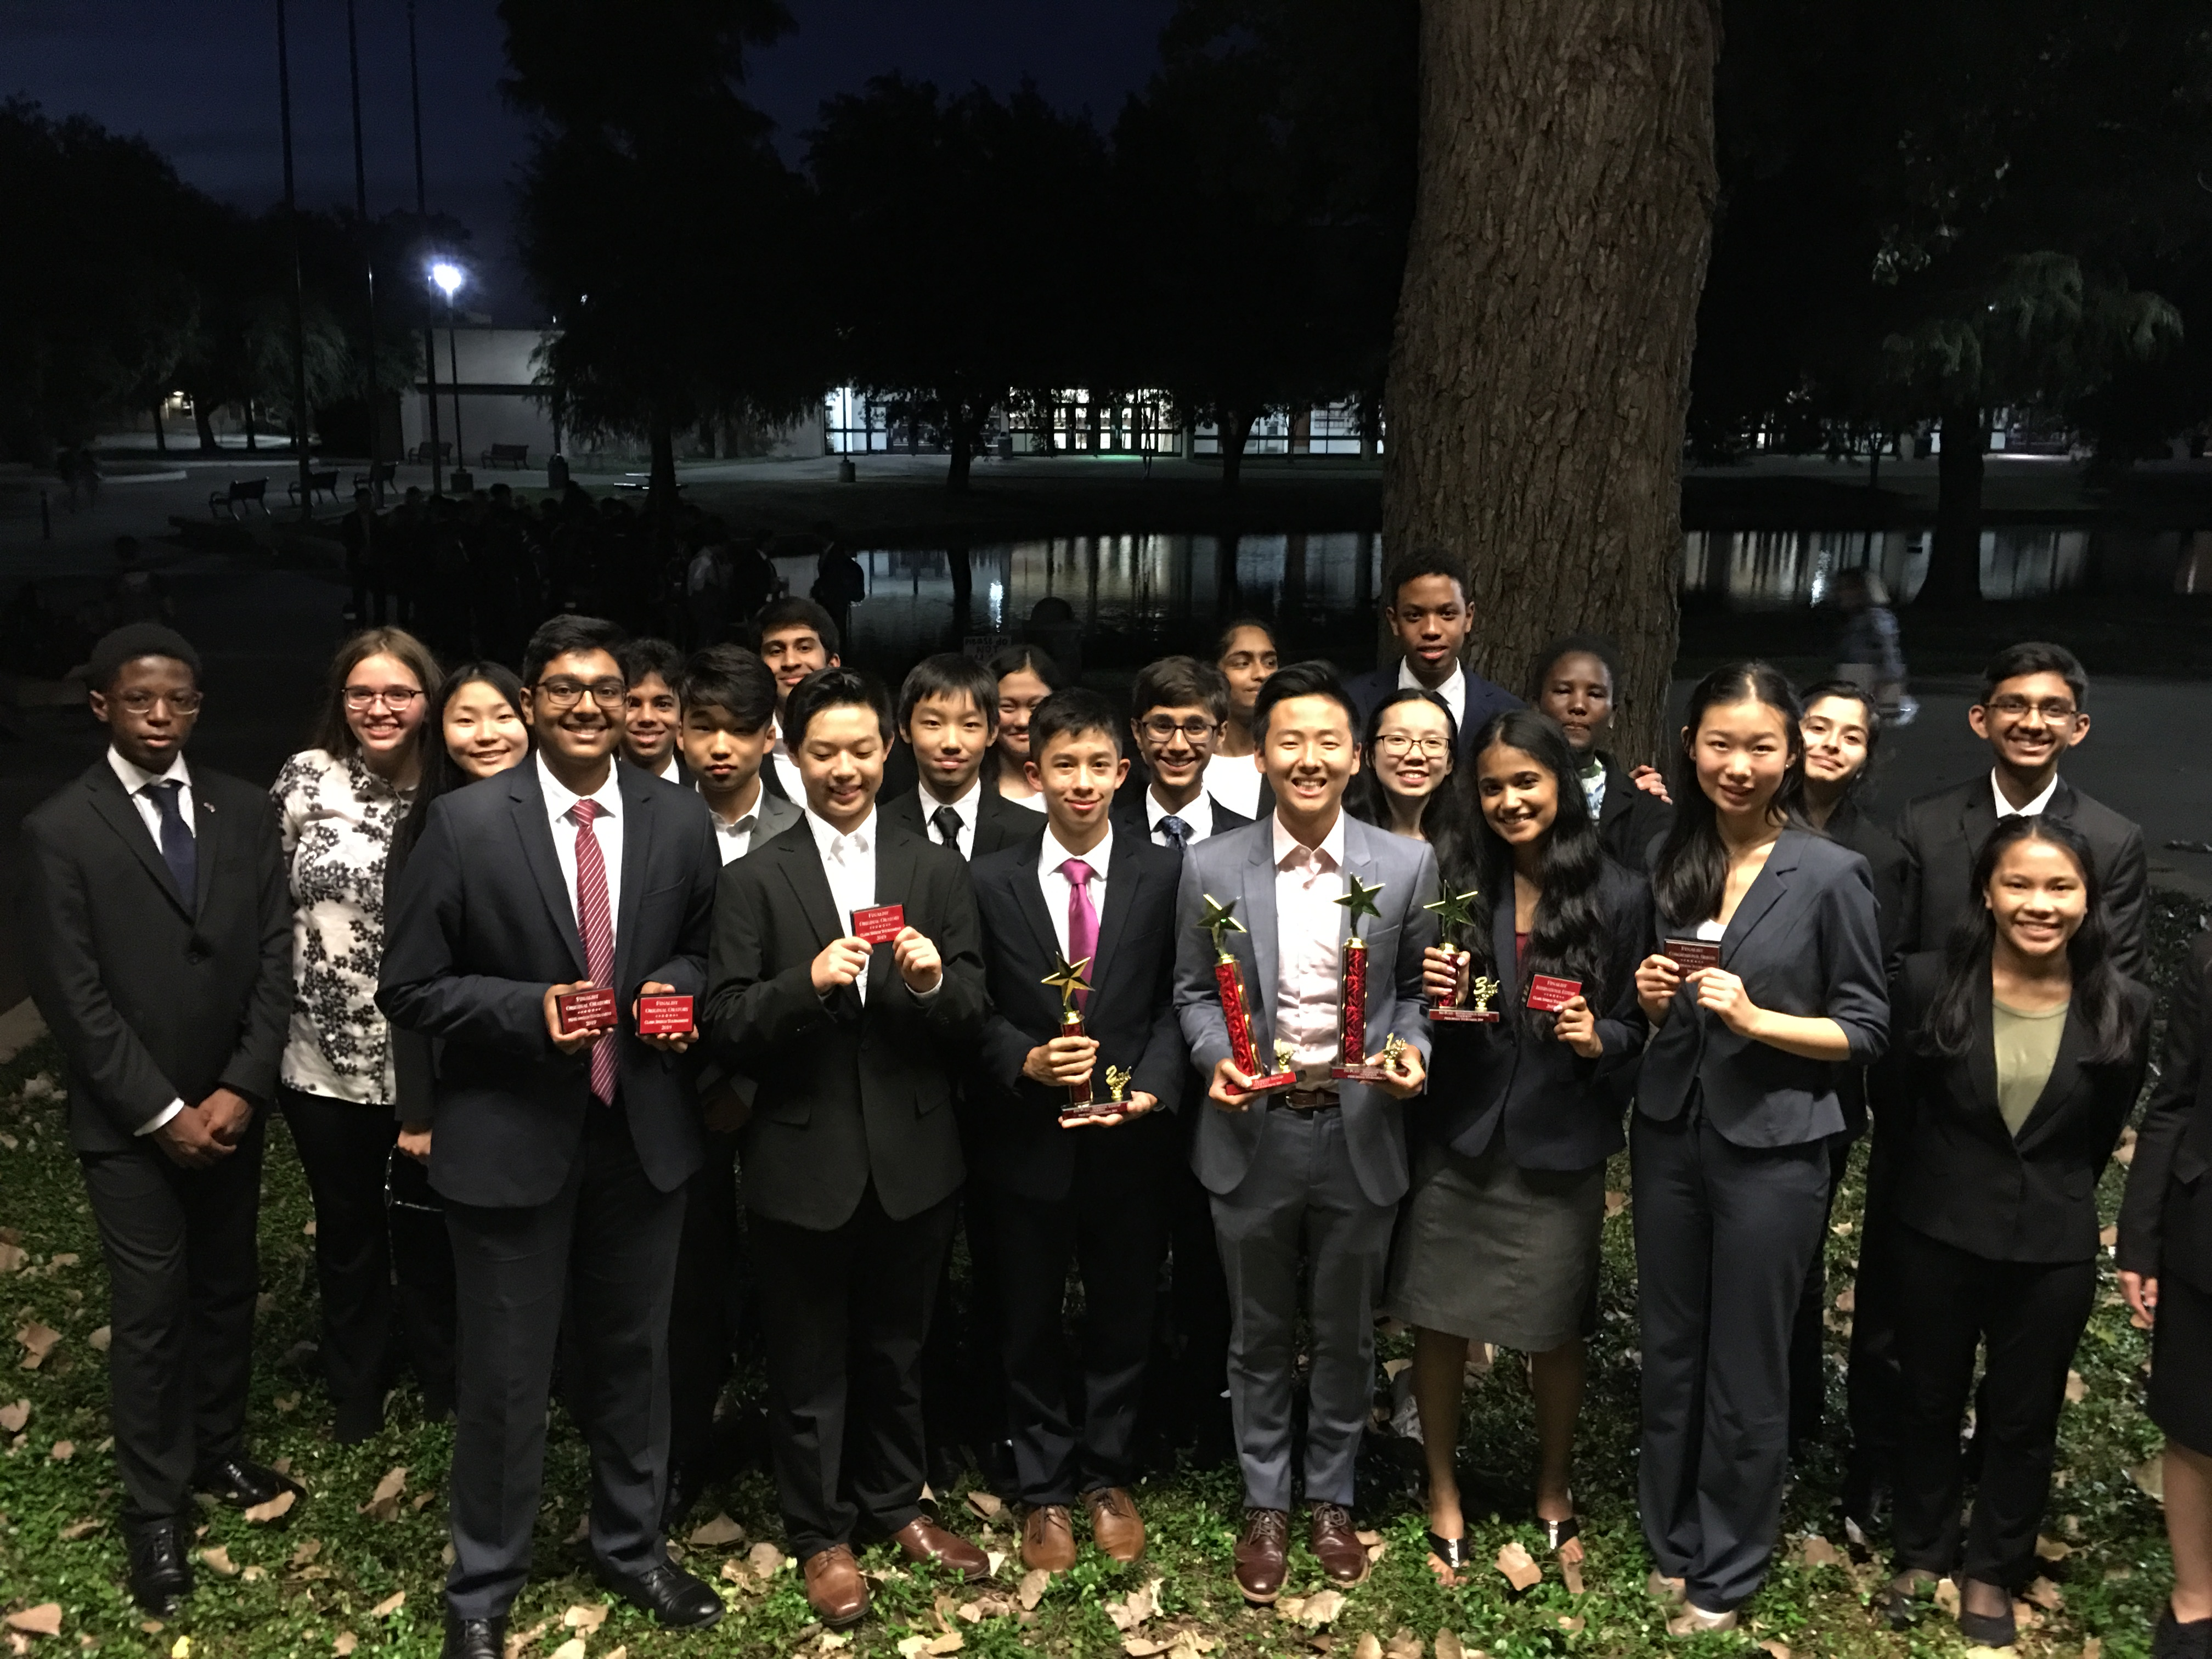 Jasper speech & debate team